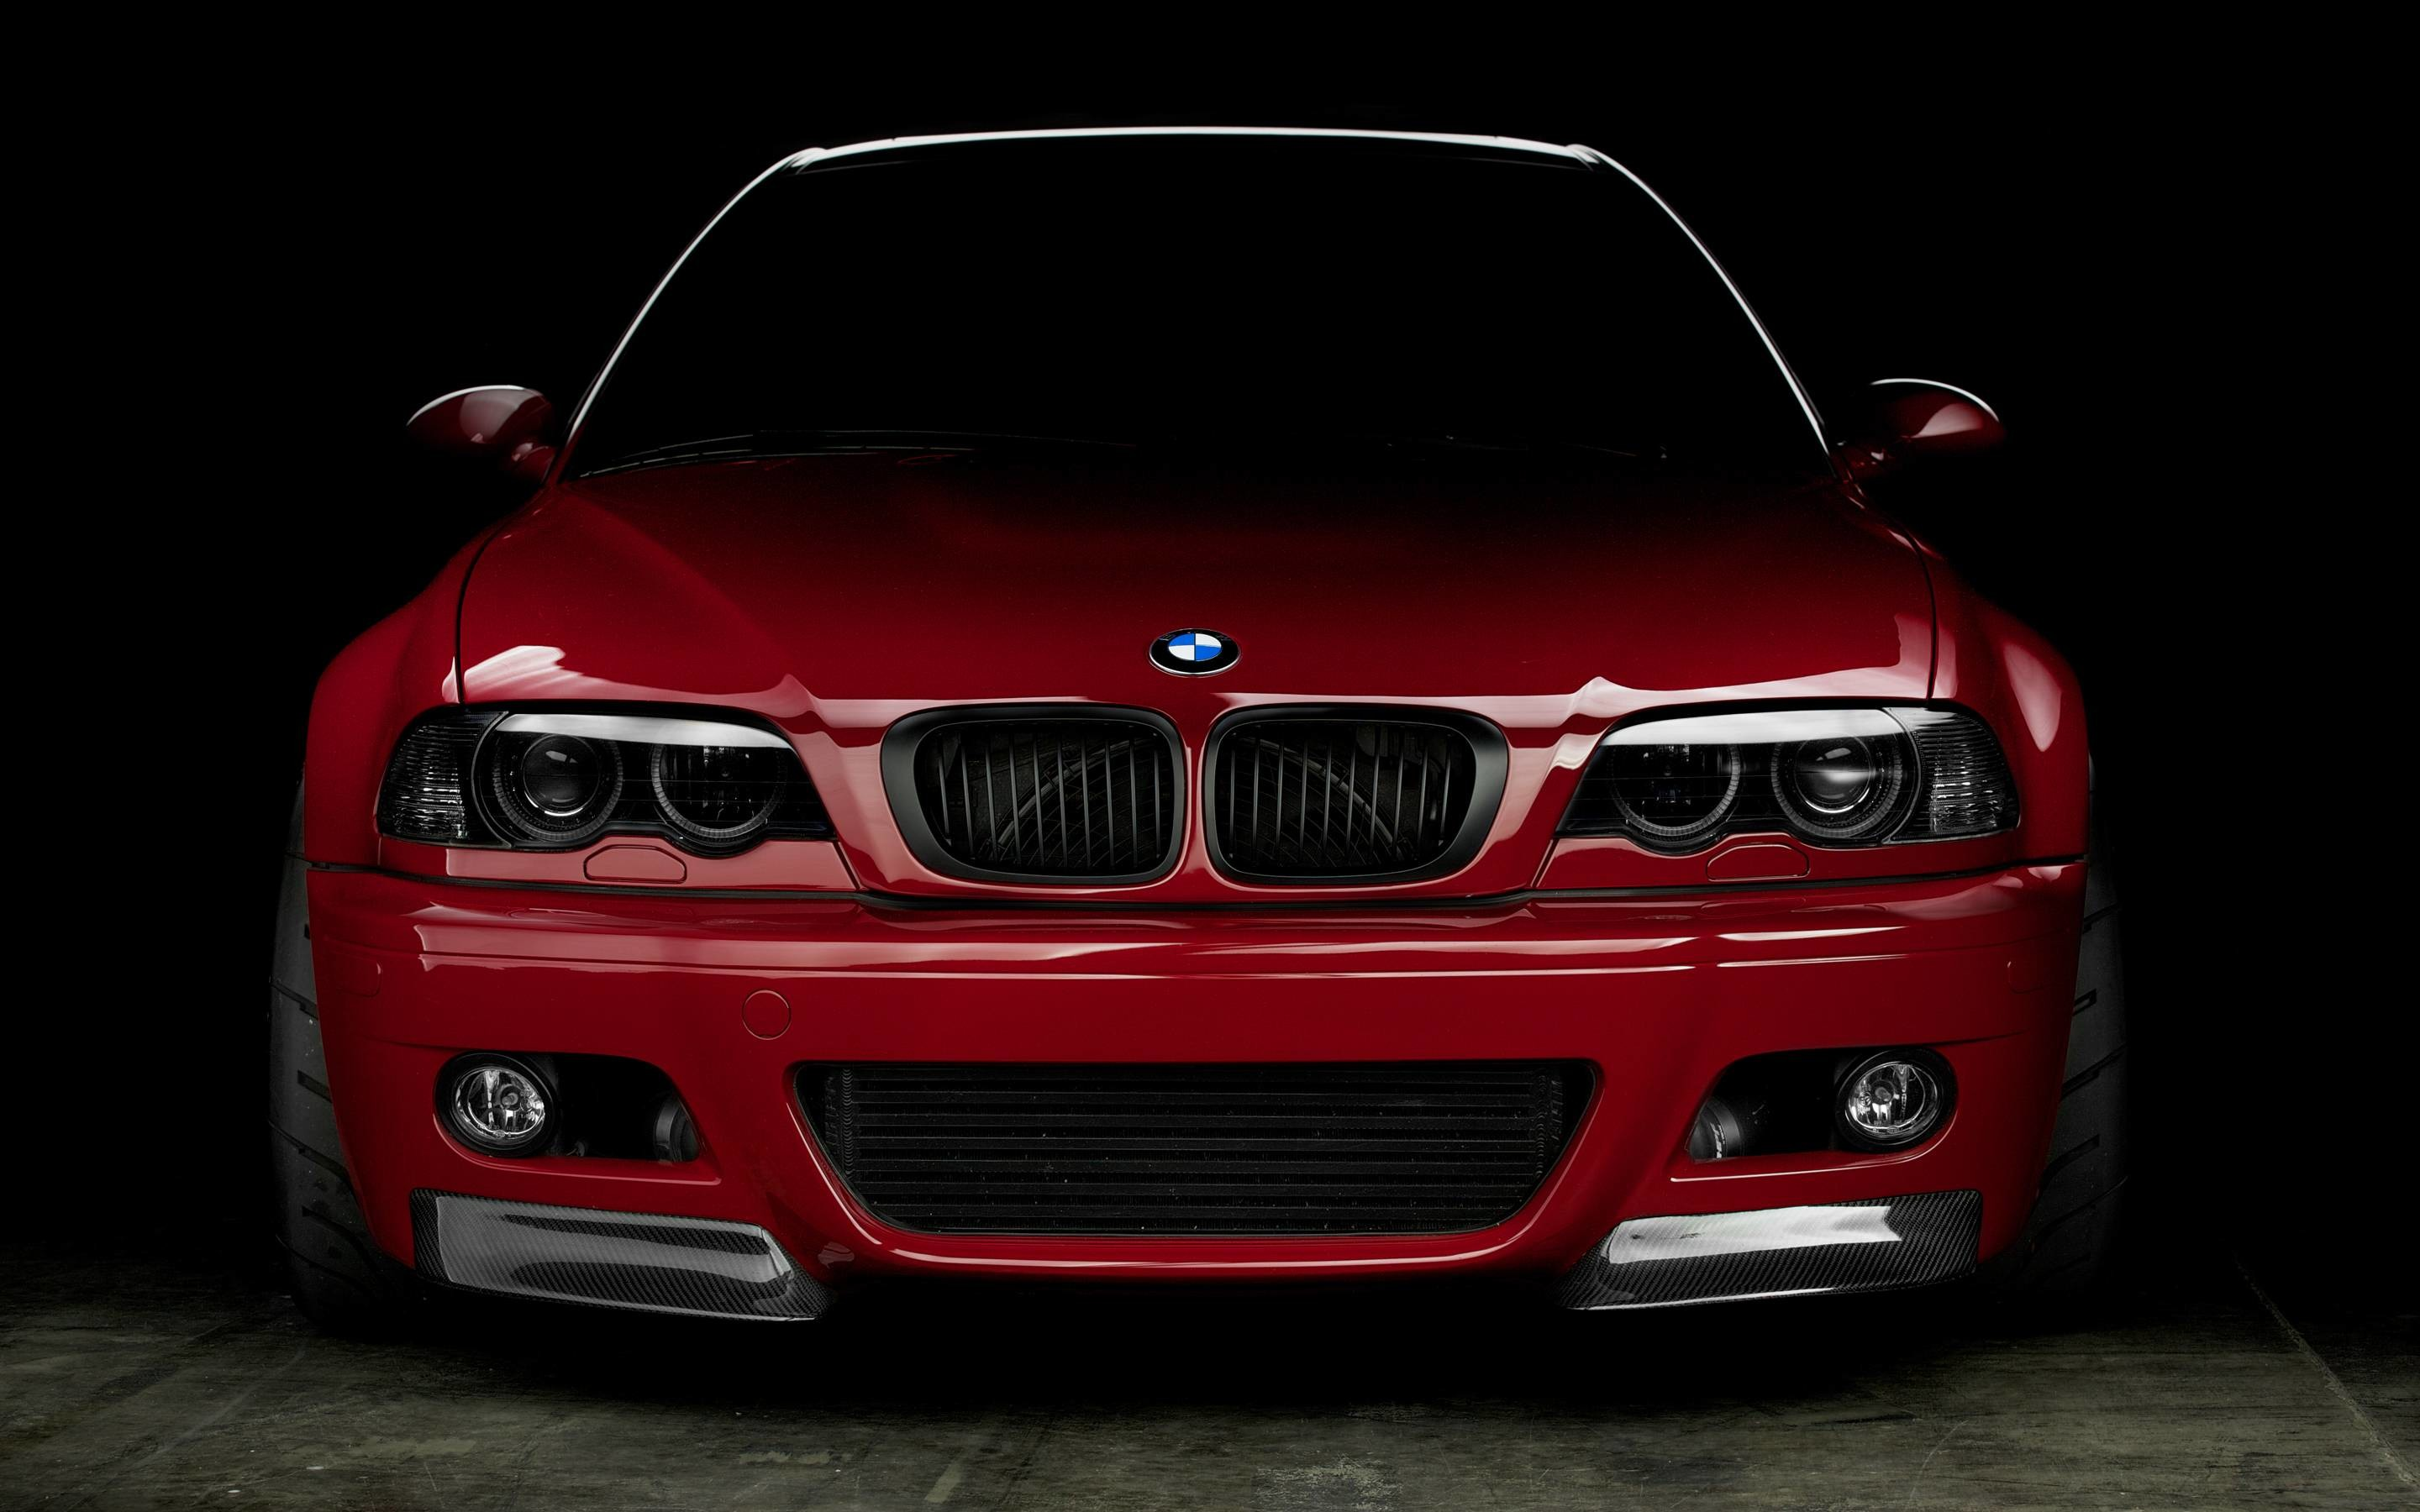 2880x1800 APEX Wallpaper – Imola Red BMW E46 M3